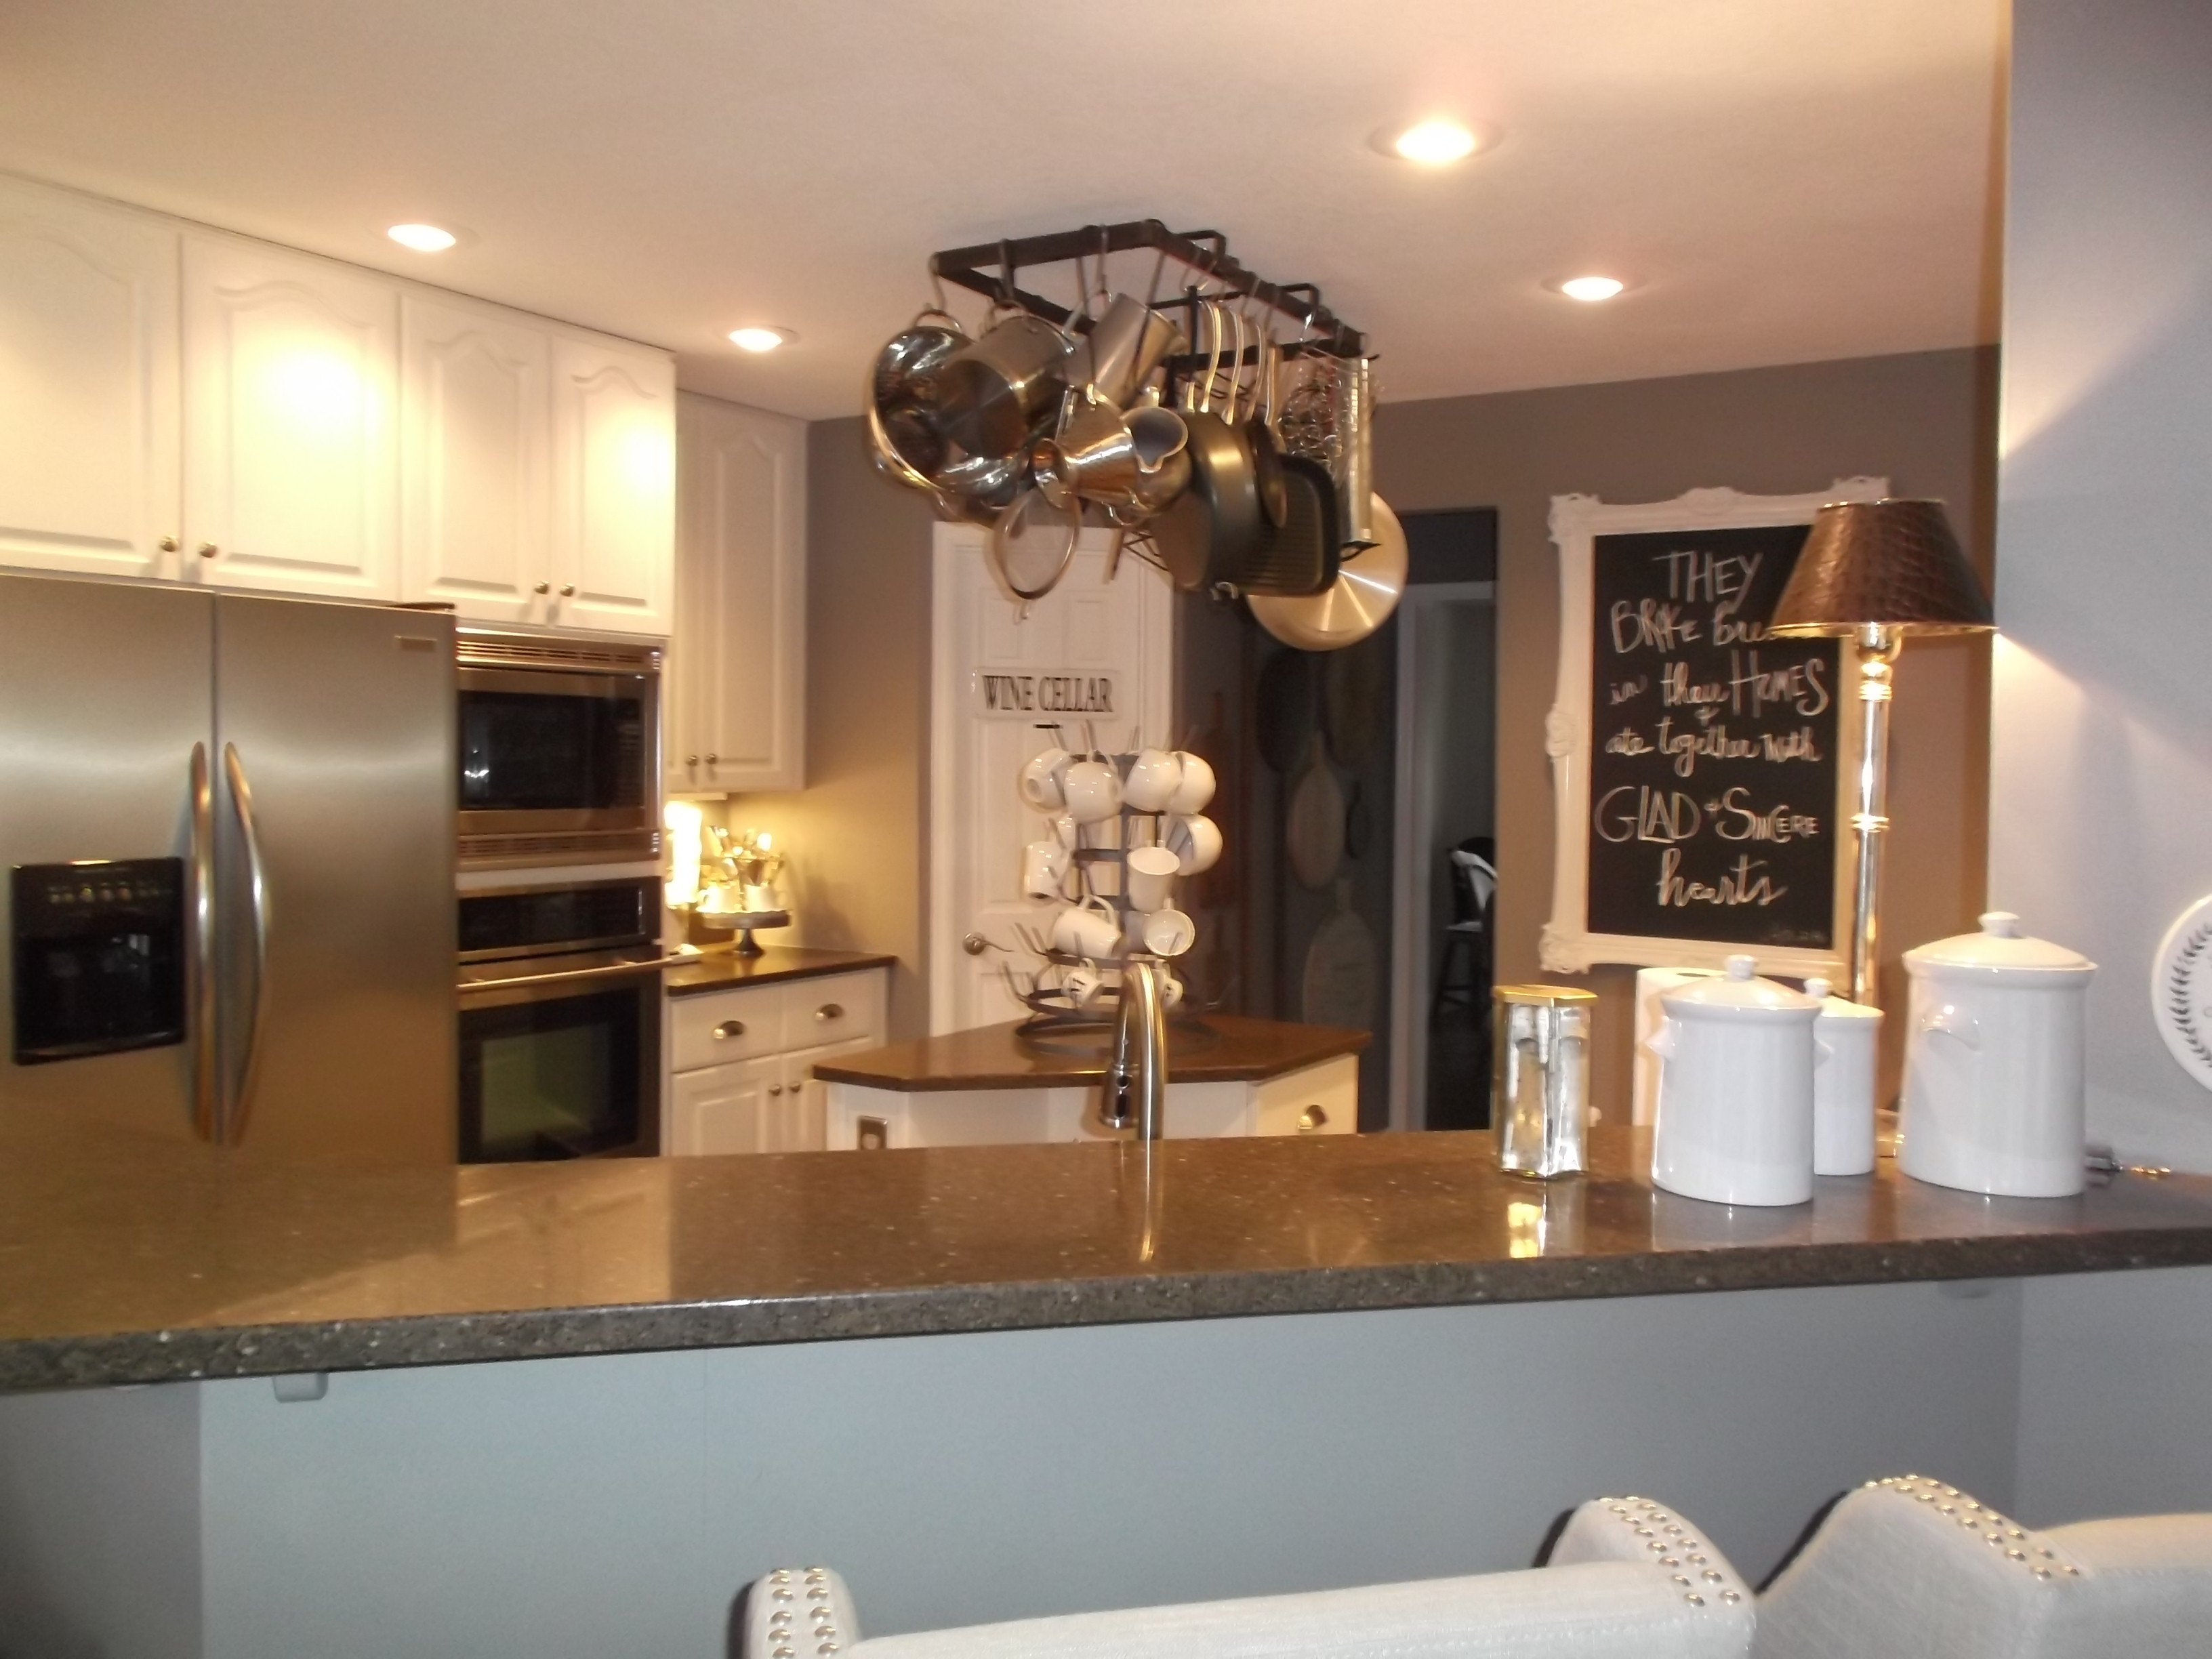 A center kitchen island coffee bar took up a lot of floor space in this 1990s-style kitchen.